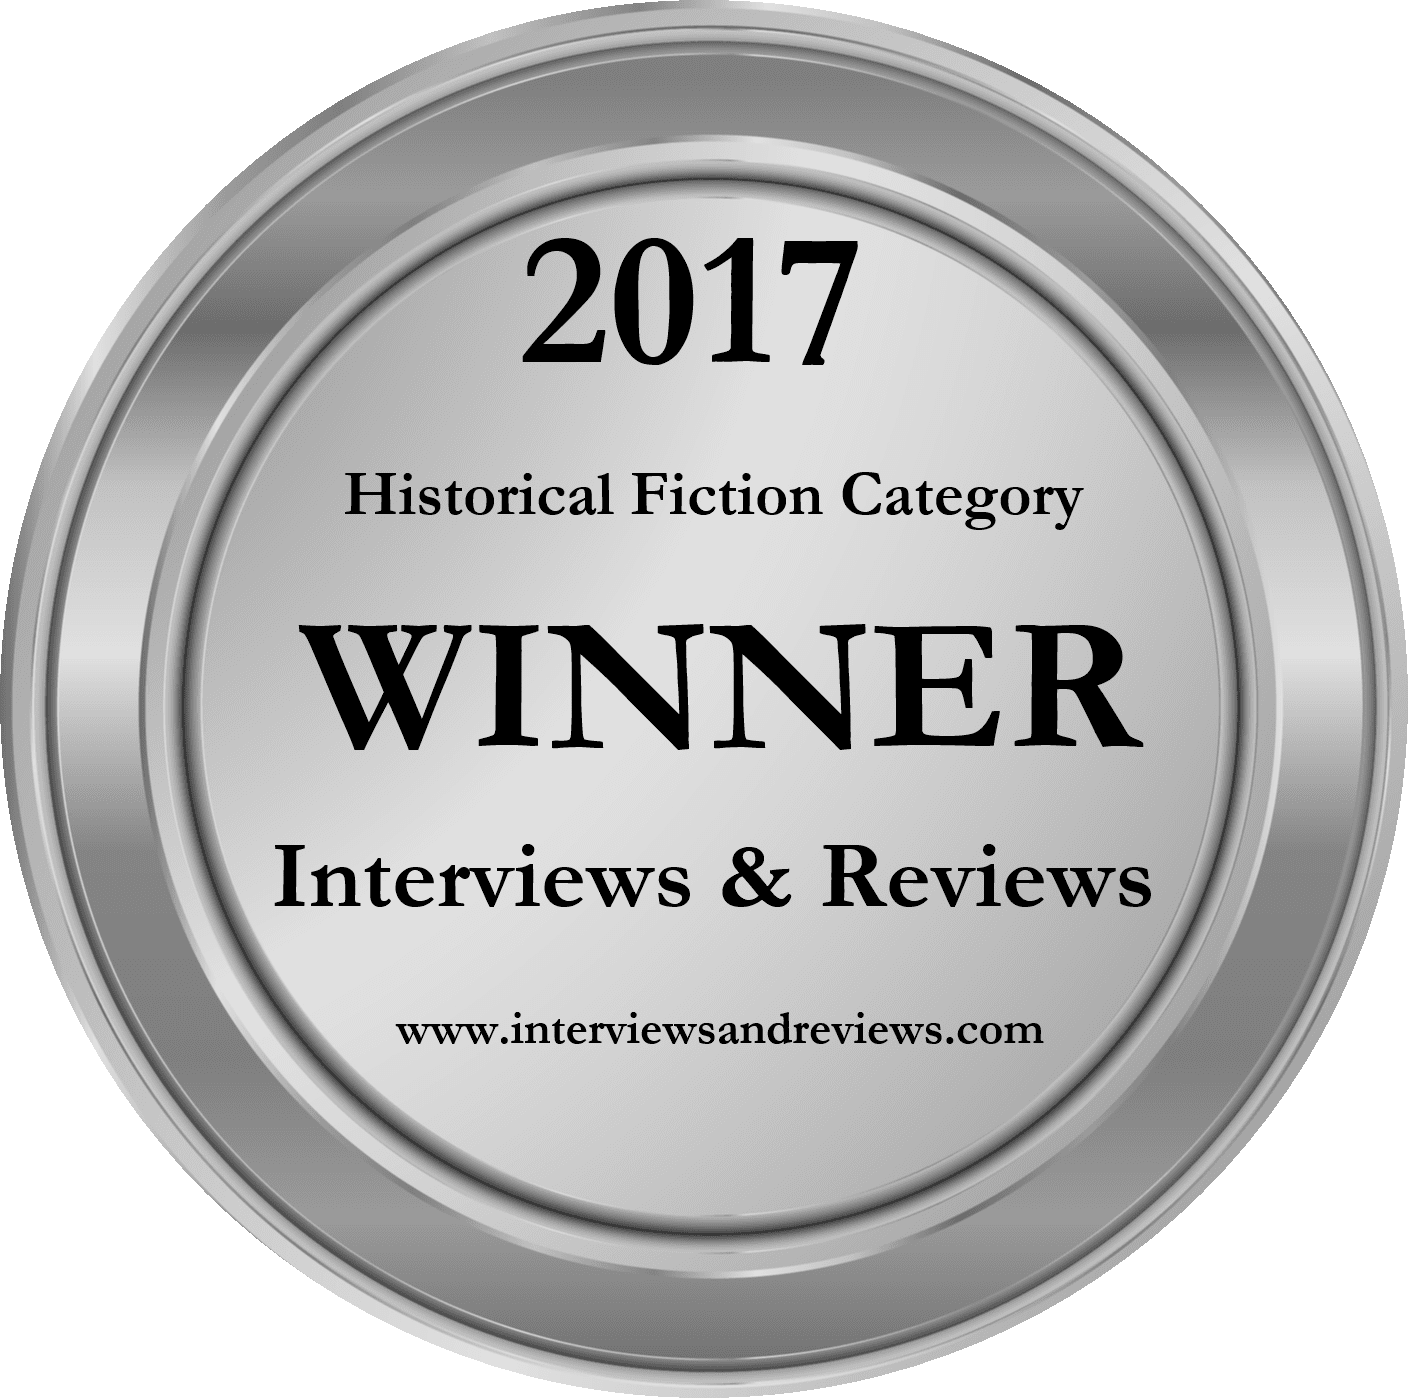 The Return Wins Silver Award